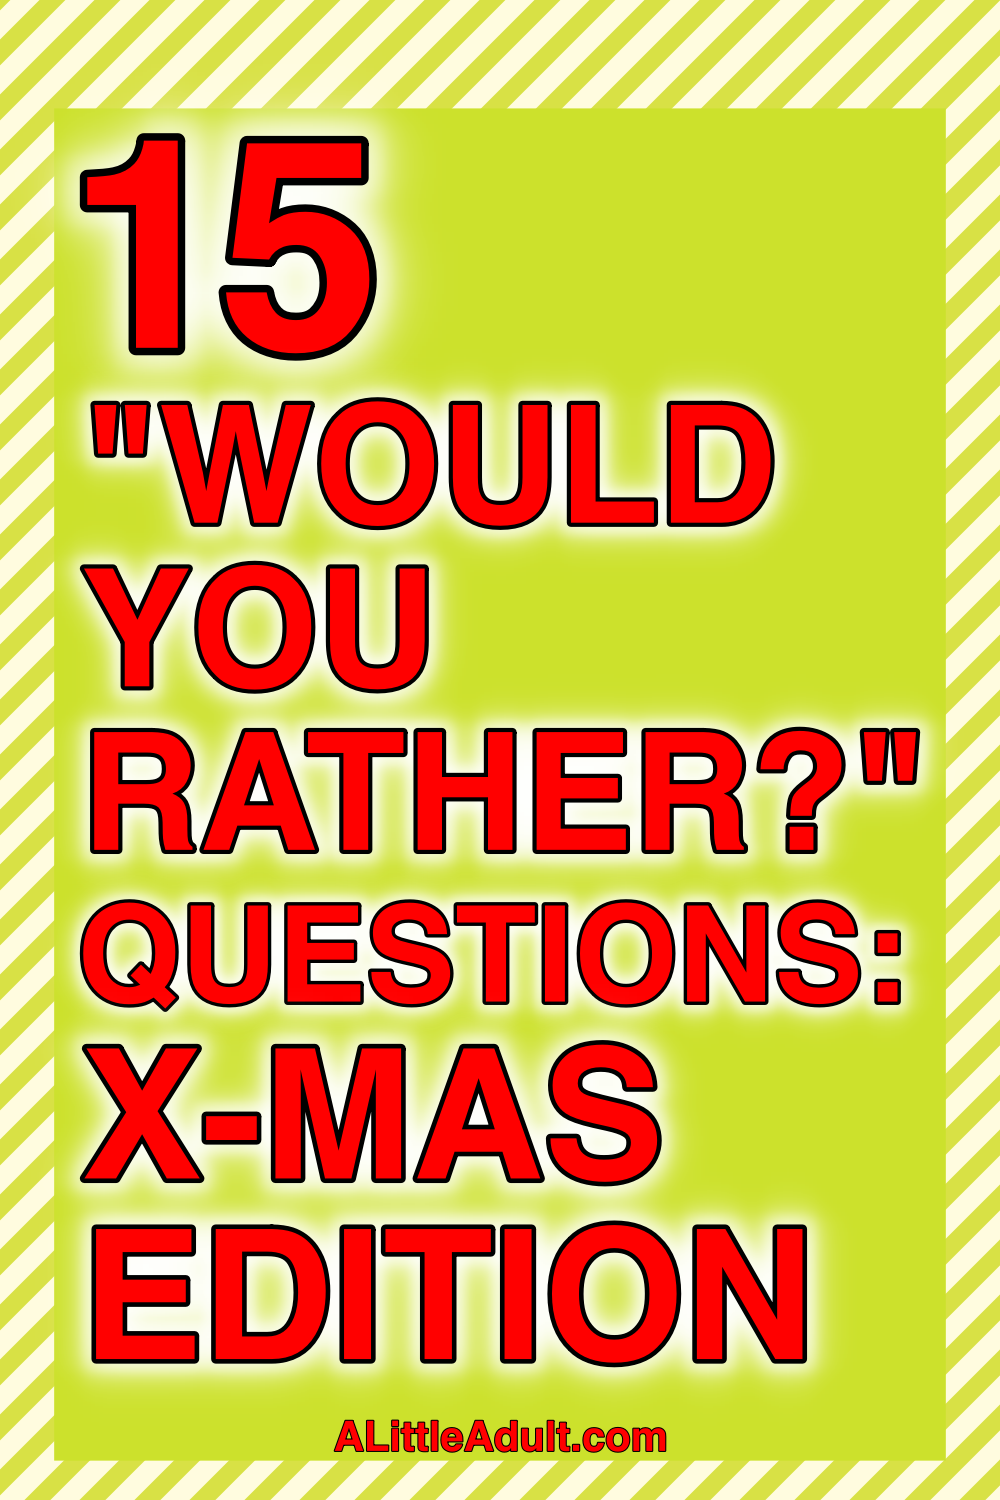 "15 ""Would you rather?"" questions: X-mas edition - A Little Adult"